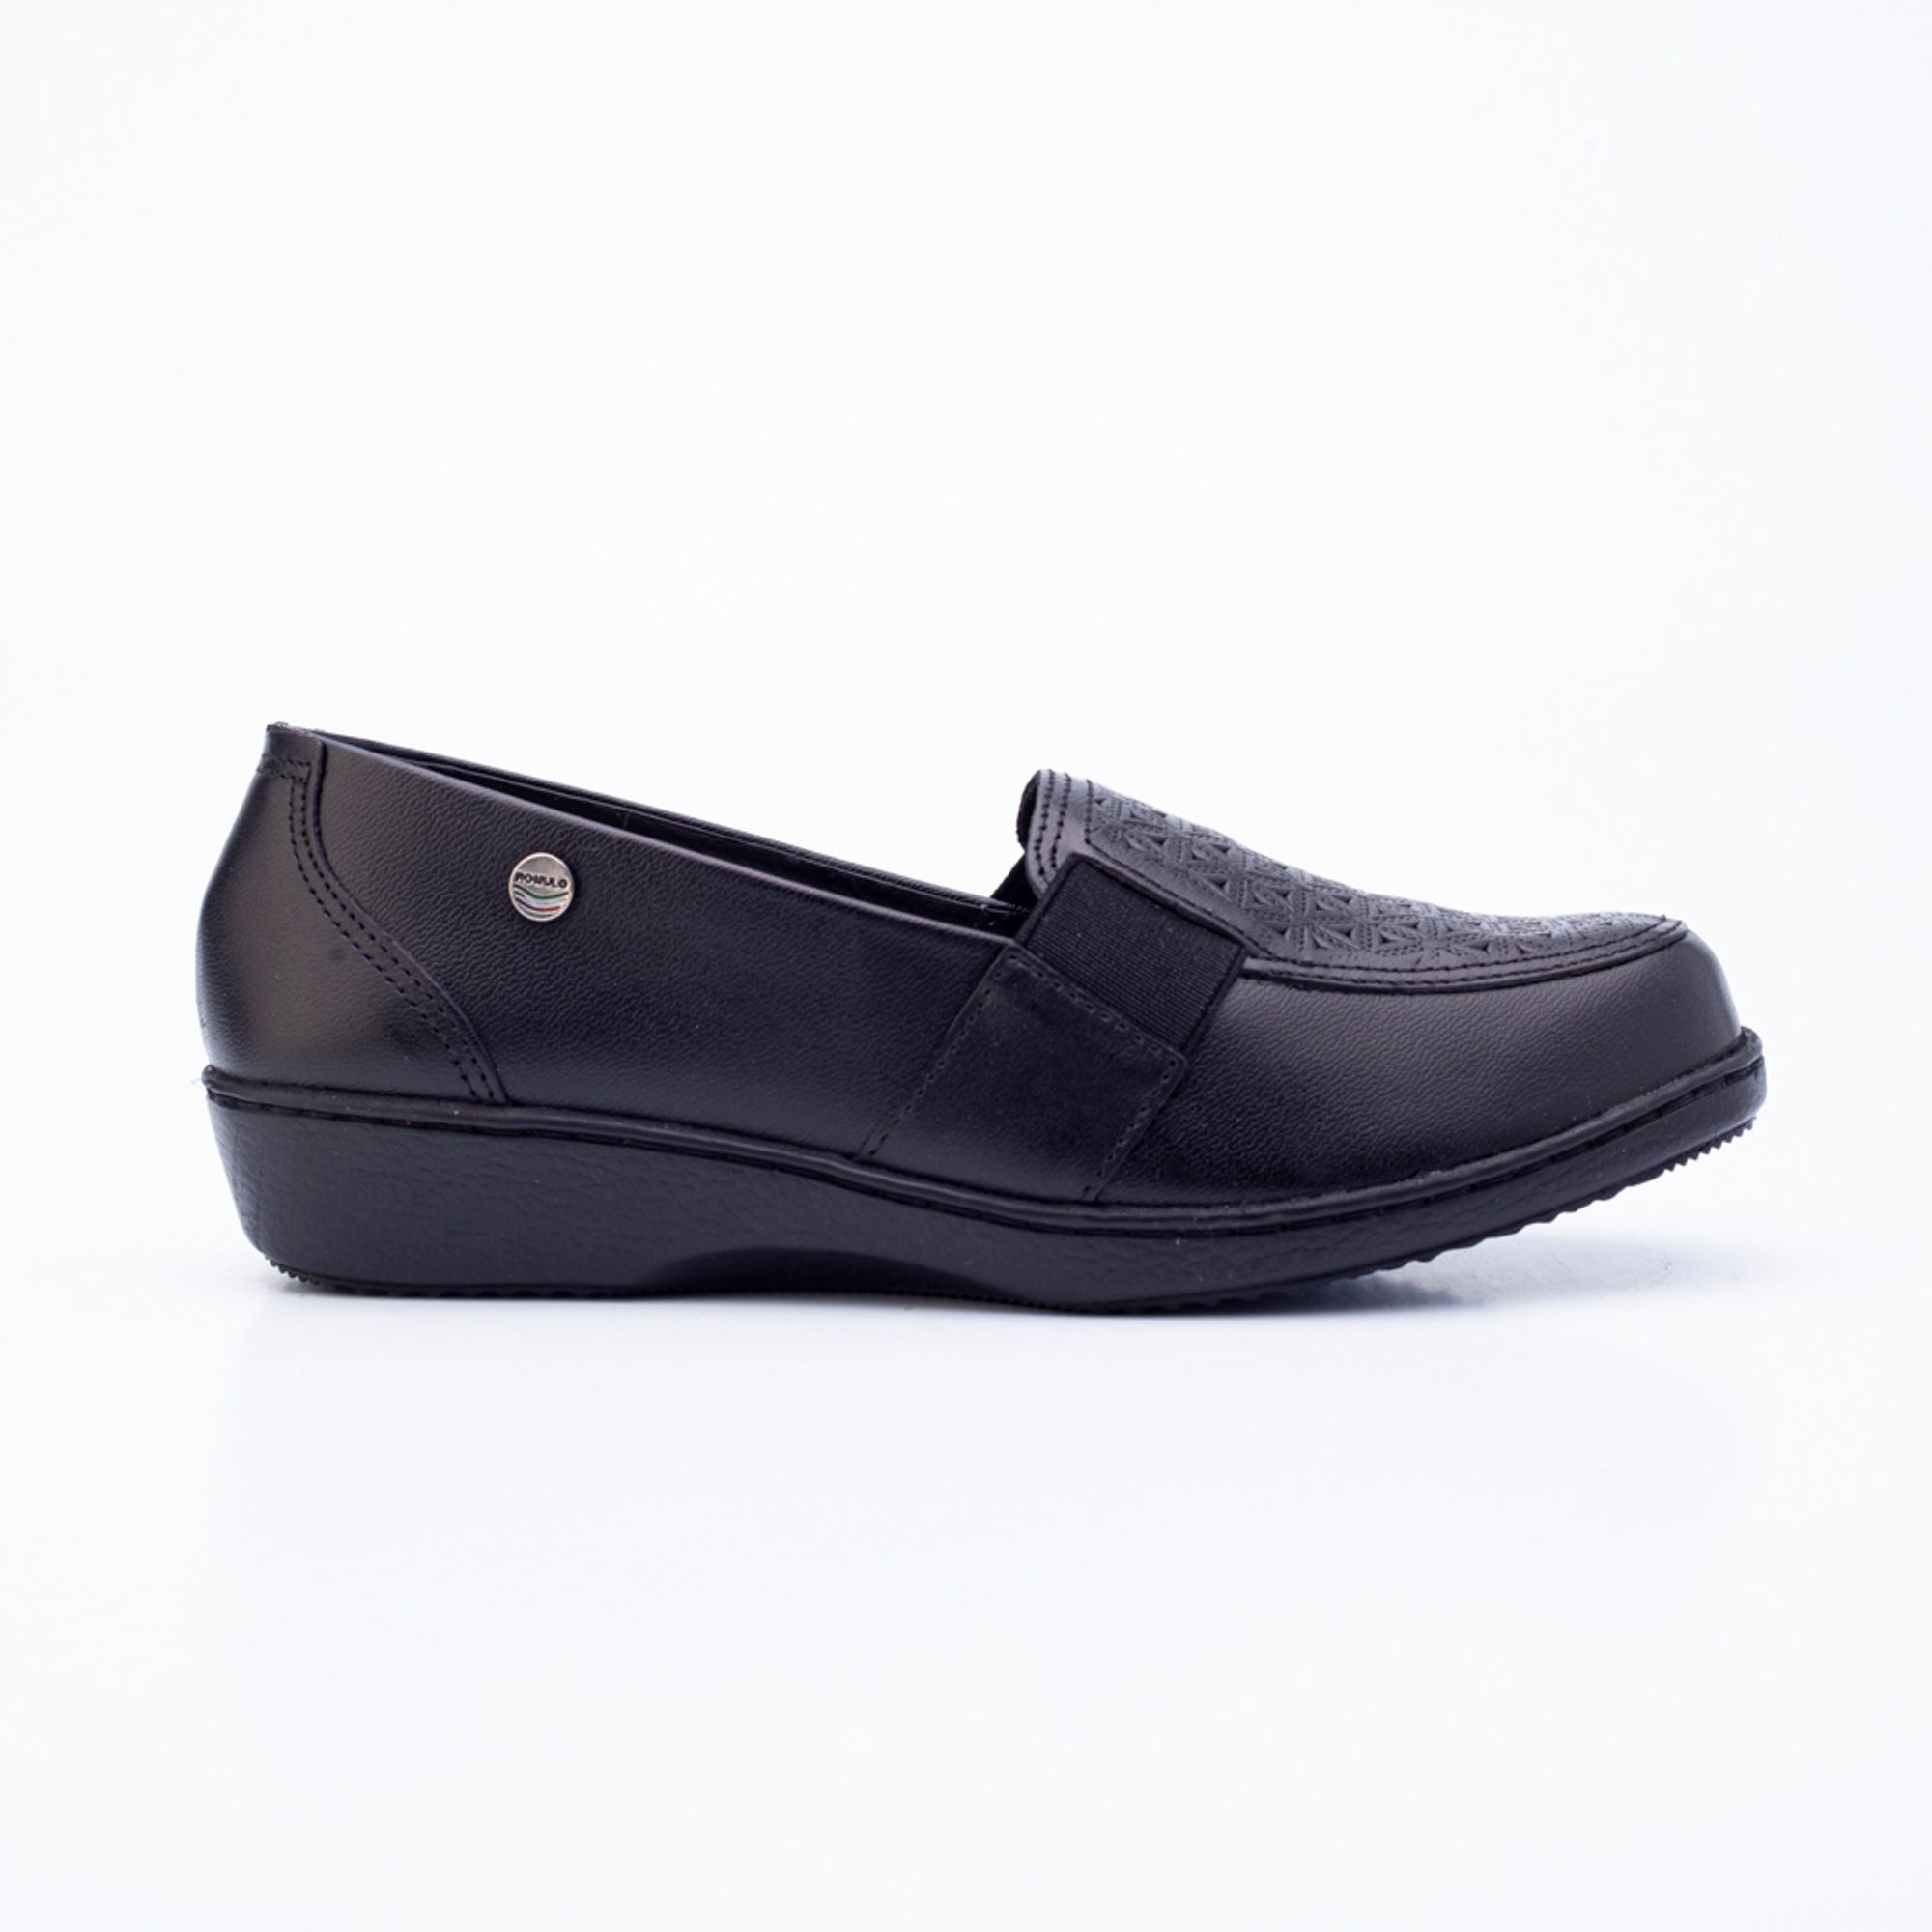 ZAPATOS-FORMALES-ROMULO-MUJER-2092-IN-MC-BS-PL-CU